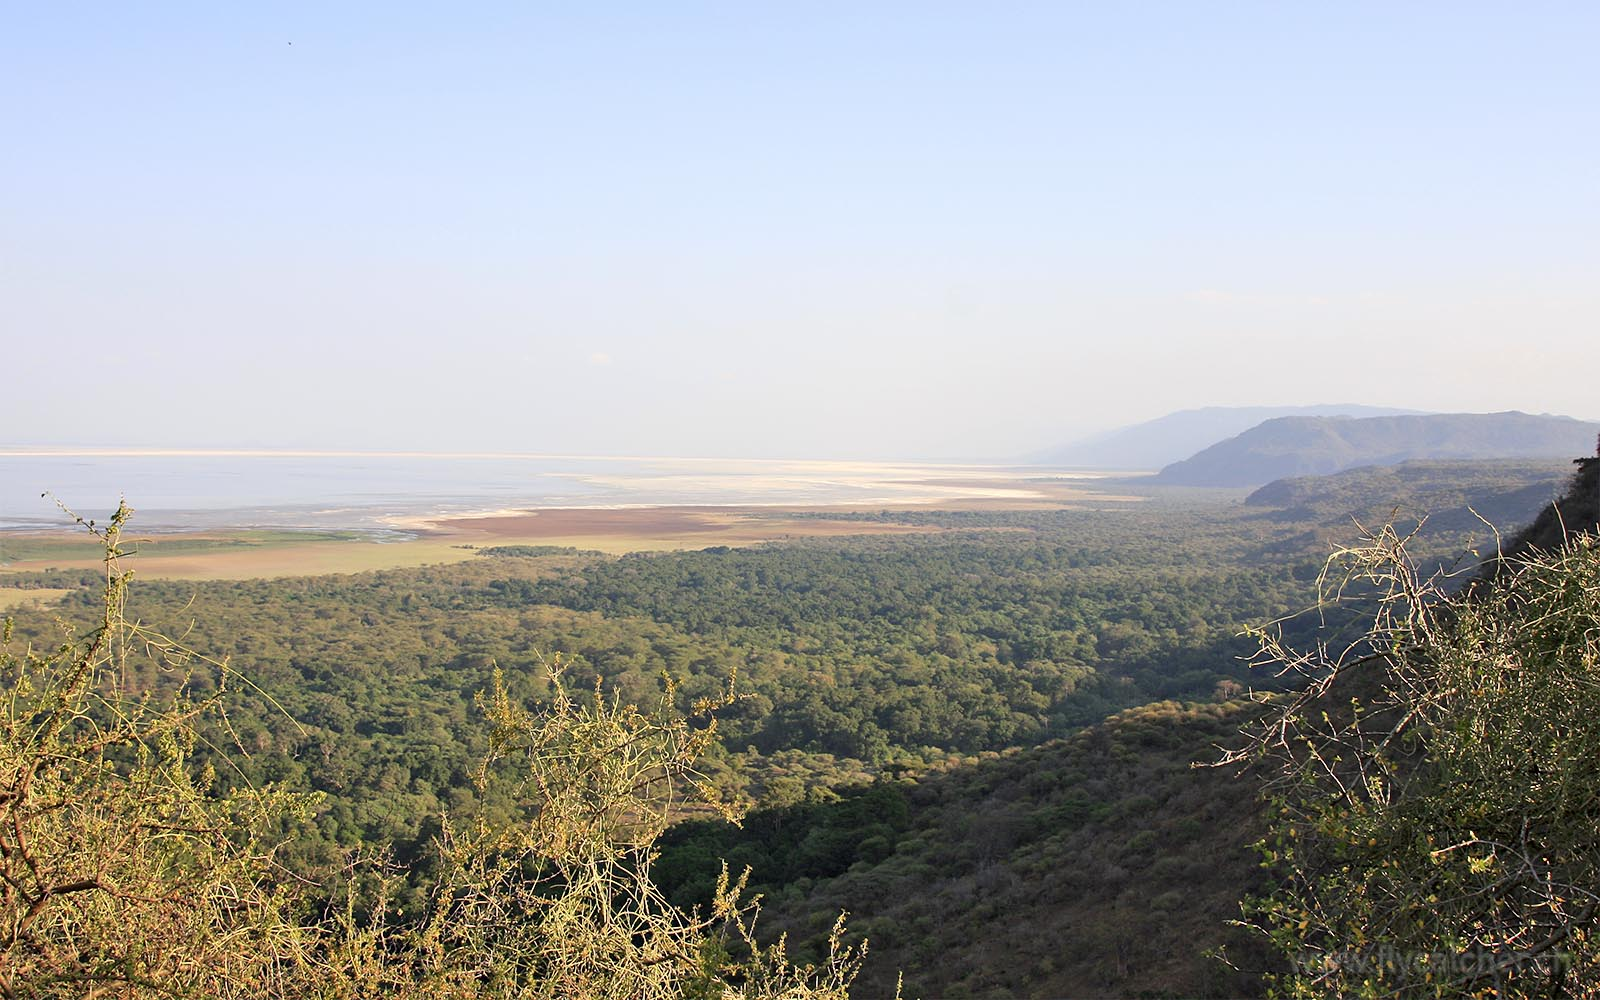 Landschaft des Lake Manyara Nationalparks